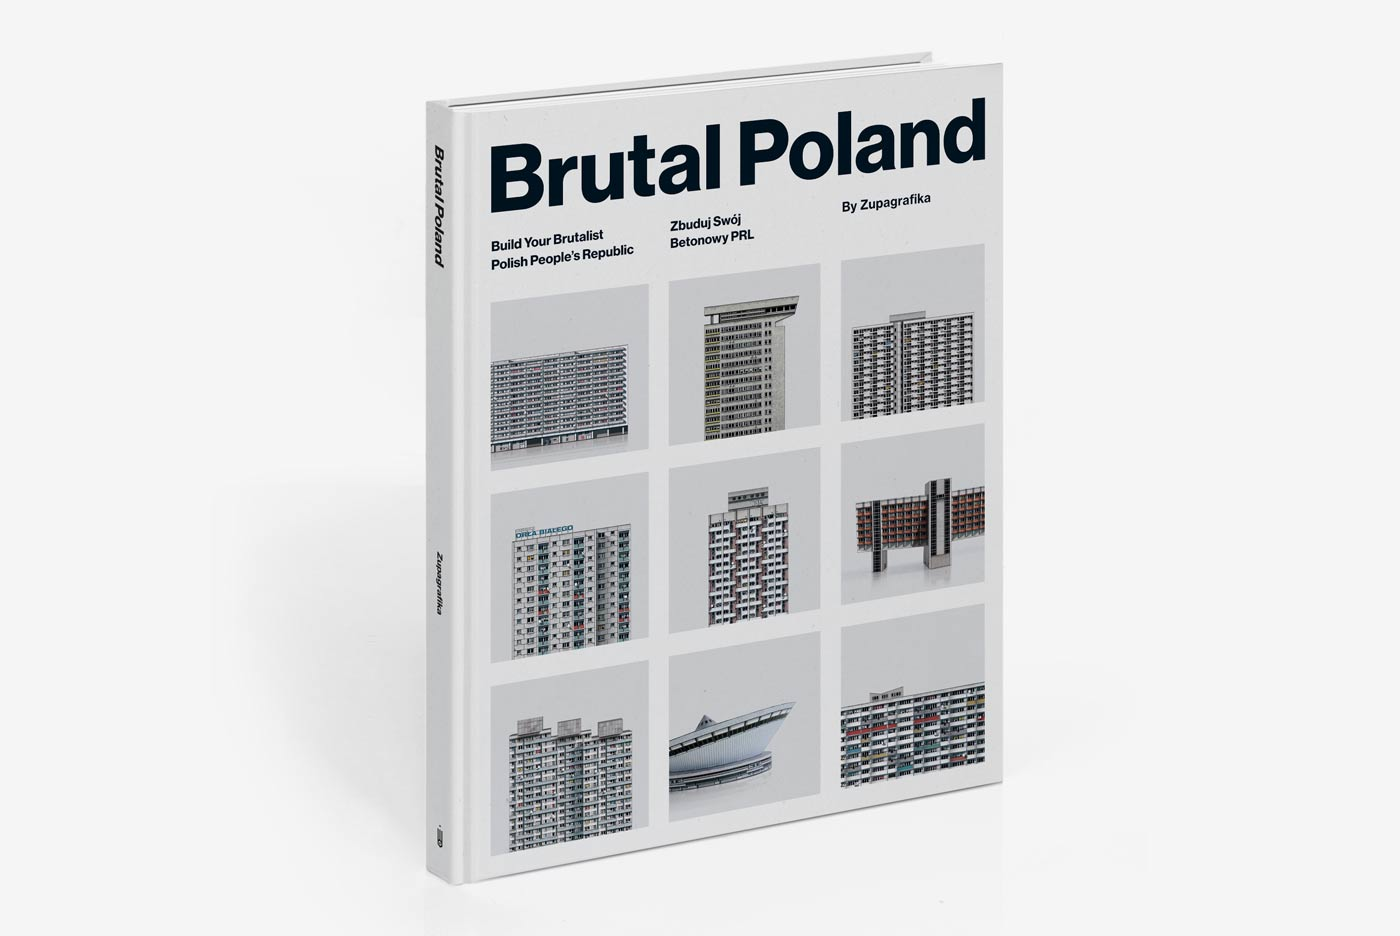 Brutal Poland by Zupagrafika. A book on Brutalism in the former PRL